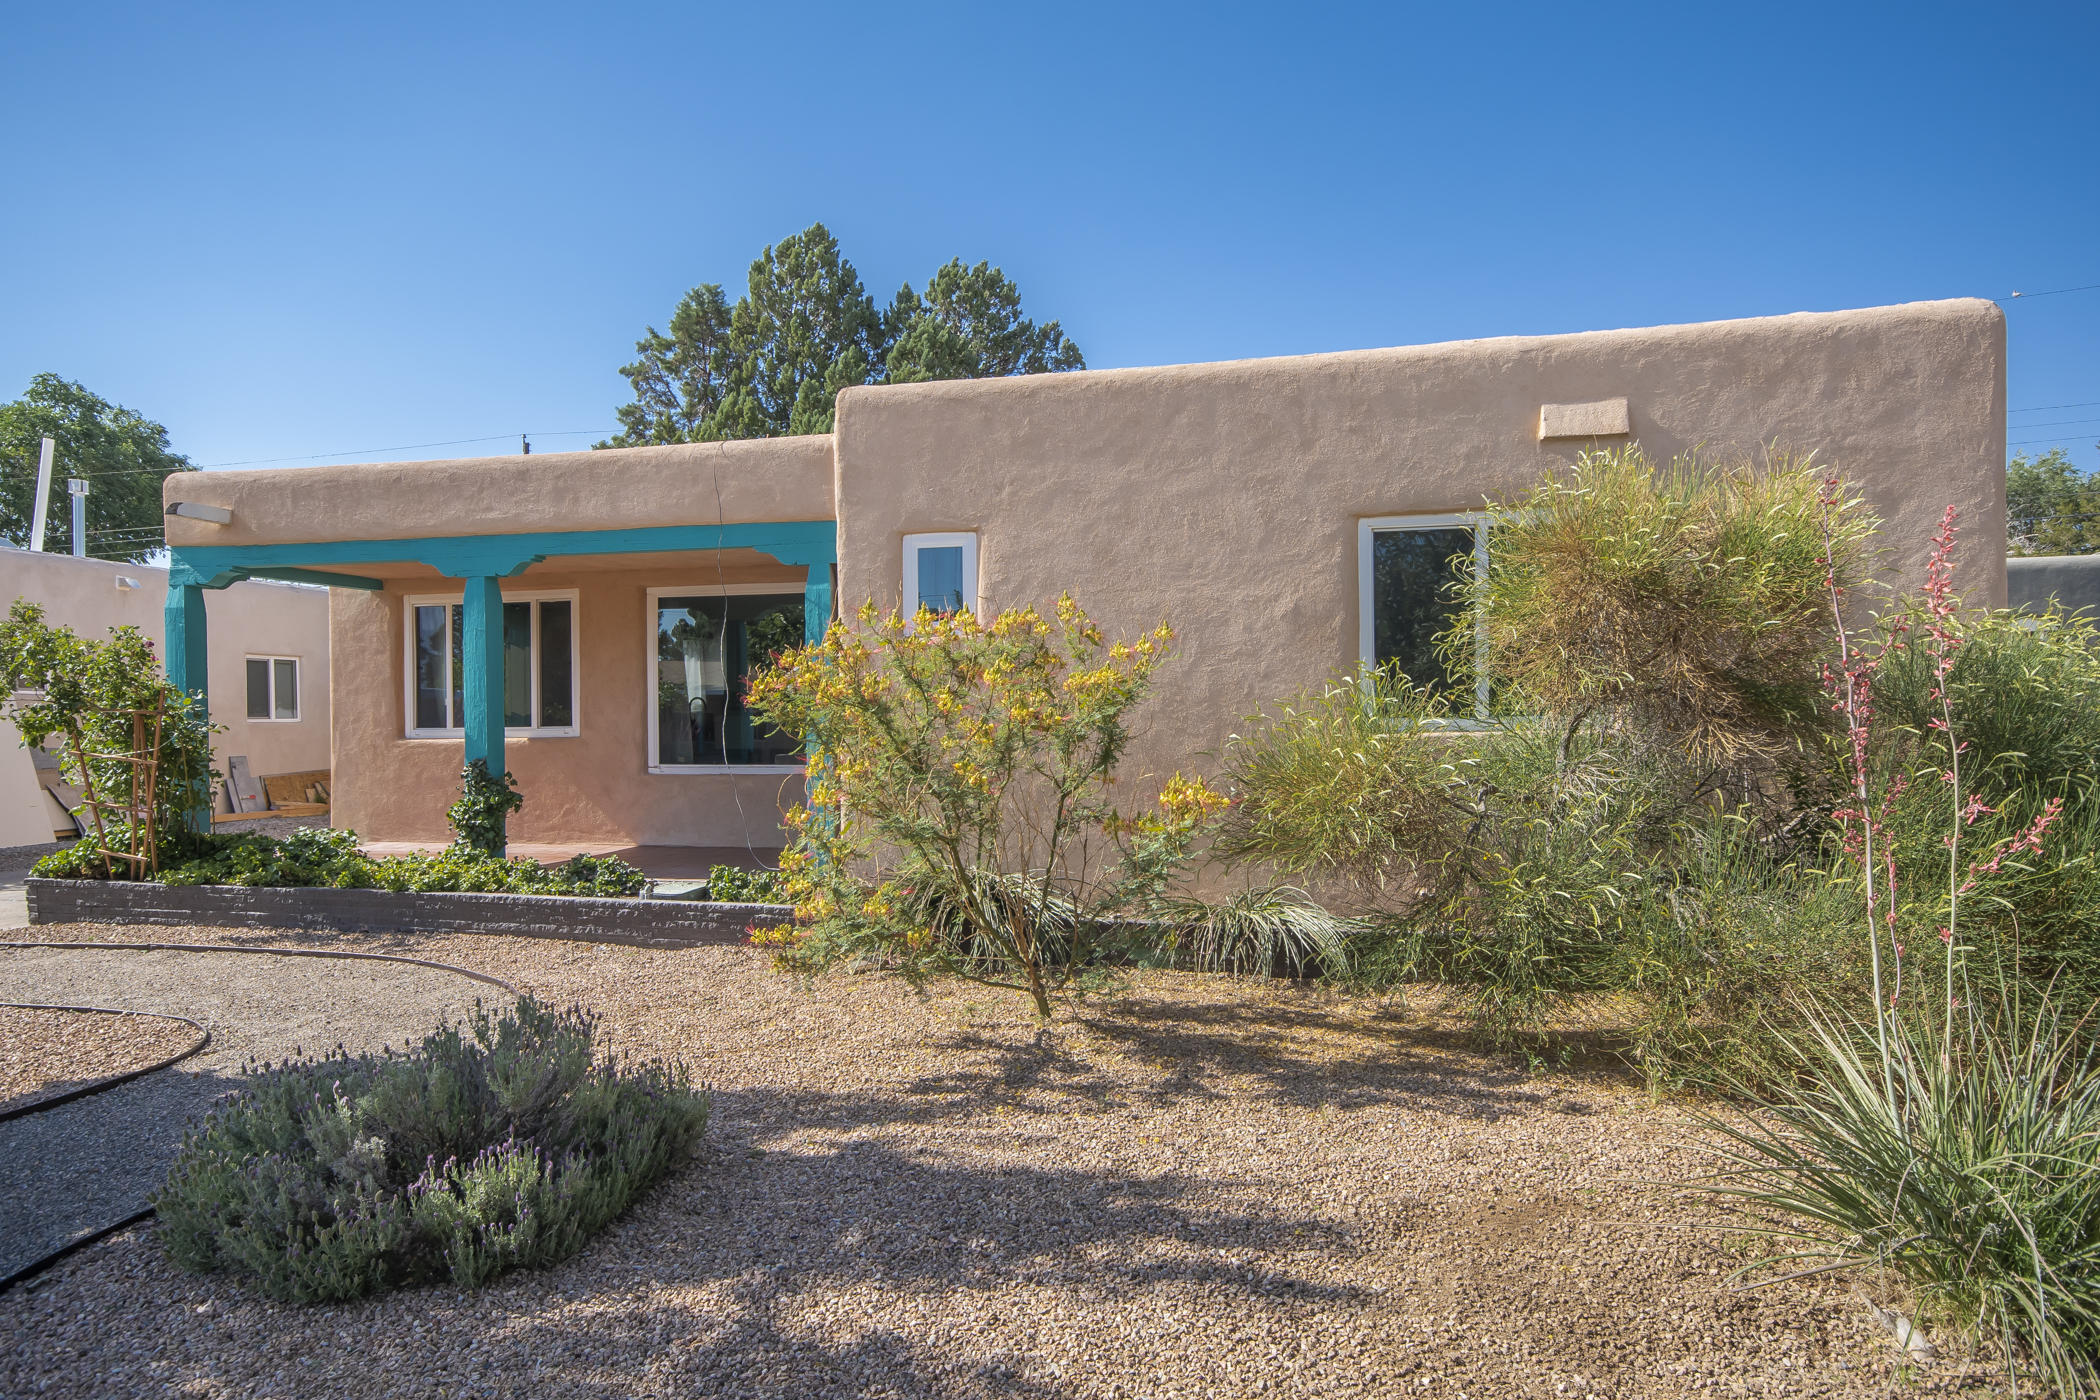 You'll love this quintessential South UNM area casa, featuring the original 3 bedroom, 1 bath, with a spacious  addition in the back  w/ 3/4 bath and wood burning fireplace.  Hard floor surfaces throughout.  Open kitchen to main living area  is fully updated with beautiful cabinets, hard surface countertops, and SS appliances.  Original full bath is updated with custom tile and contemporary finishes.  New stucco, newer windows, recent full roof tune.  Private backyard features a nice pergola just off the rear living area.  Close to Sandia Labs, Kirkland AFB, w/ easy access to the Sunport.  Walk to Michael Thomas coffee shop!  A lovely neighborhood and a nice place to call home :)